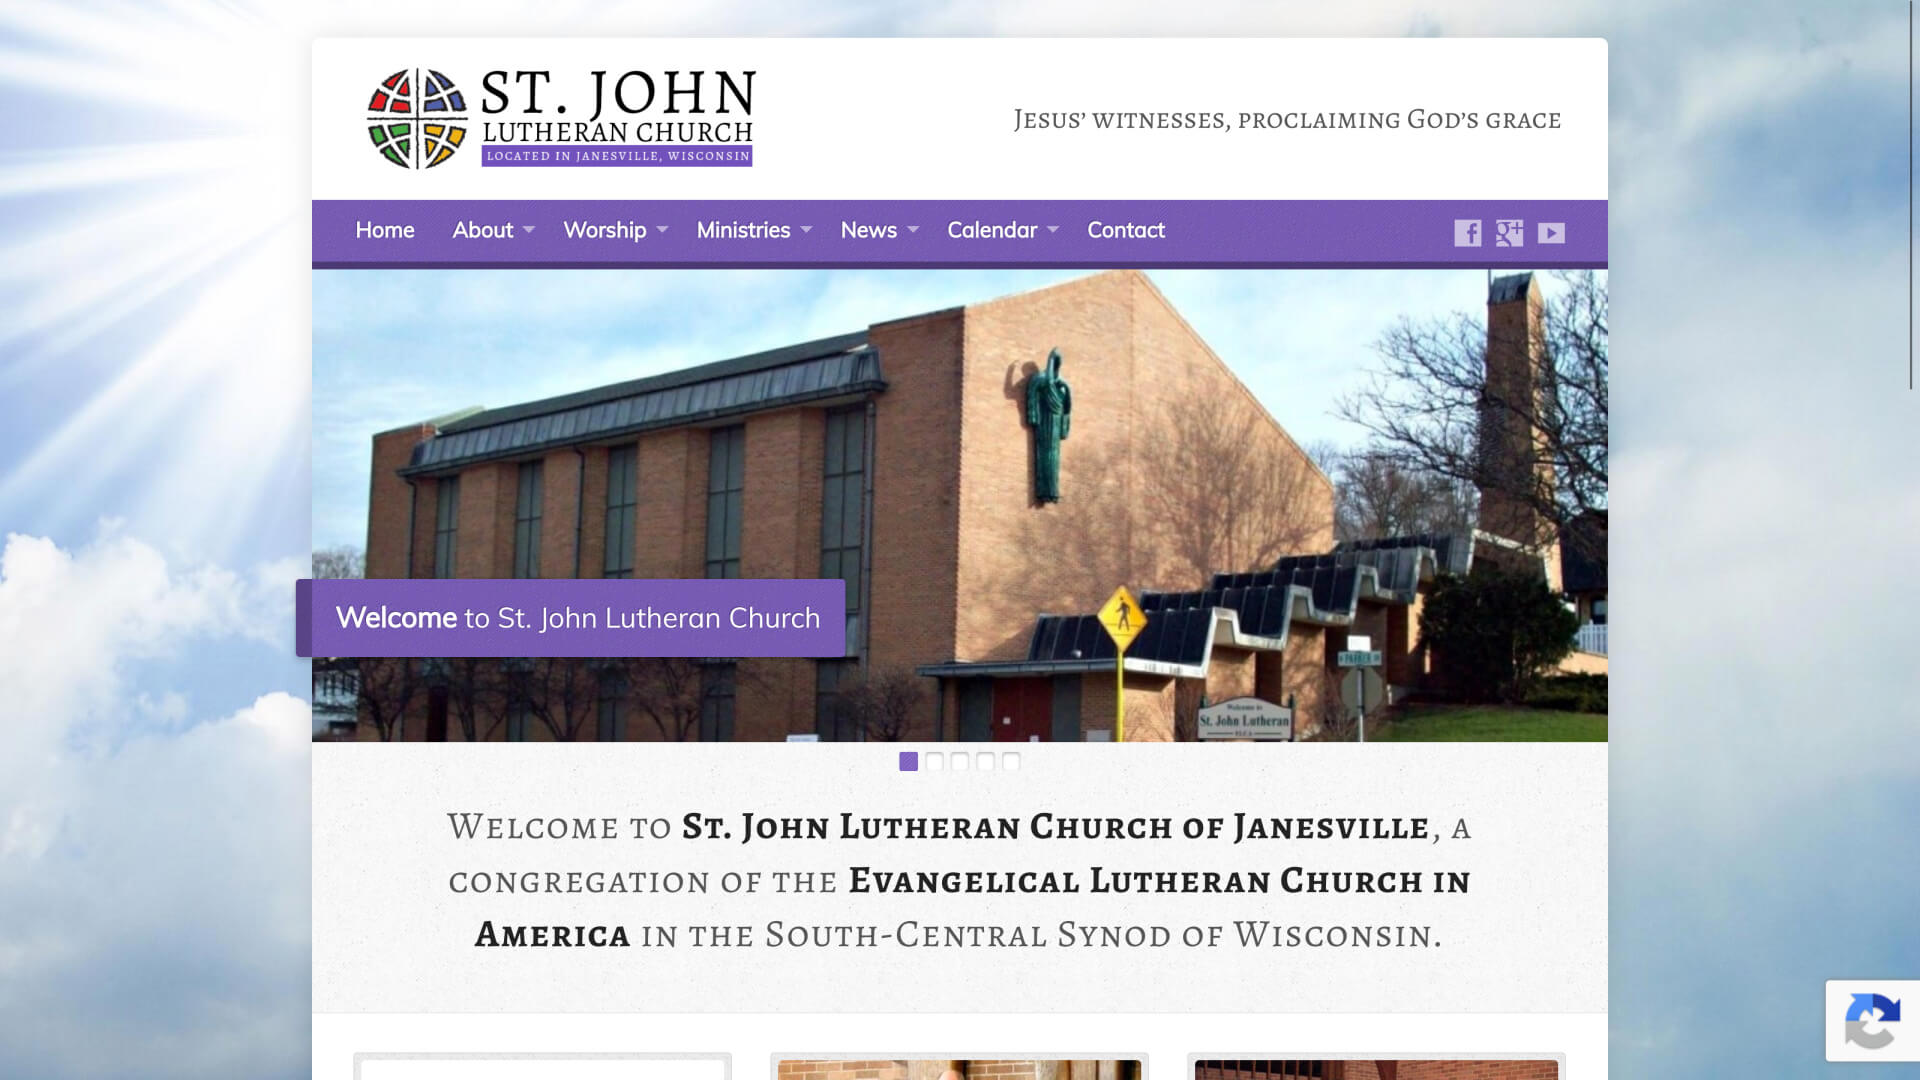 Screenshot of St John Lutheran Church homepage from March 27, 2020